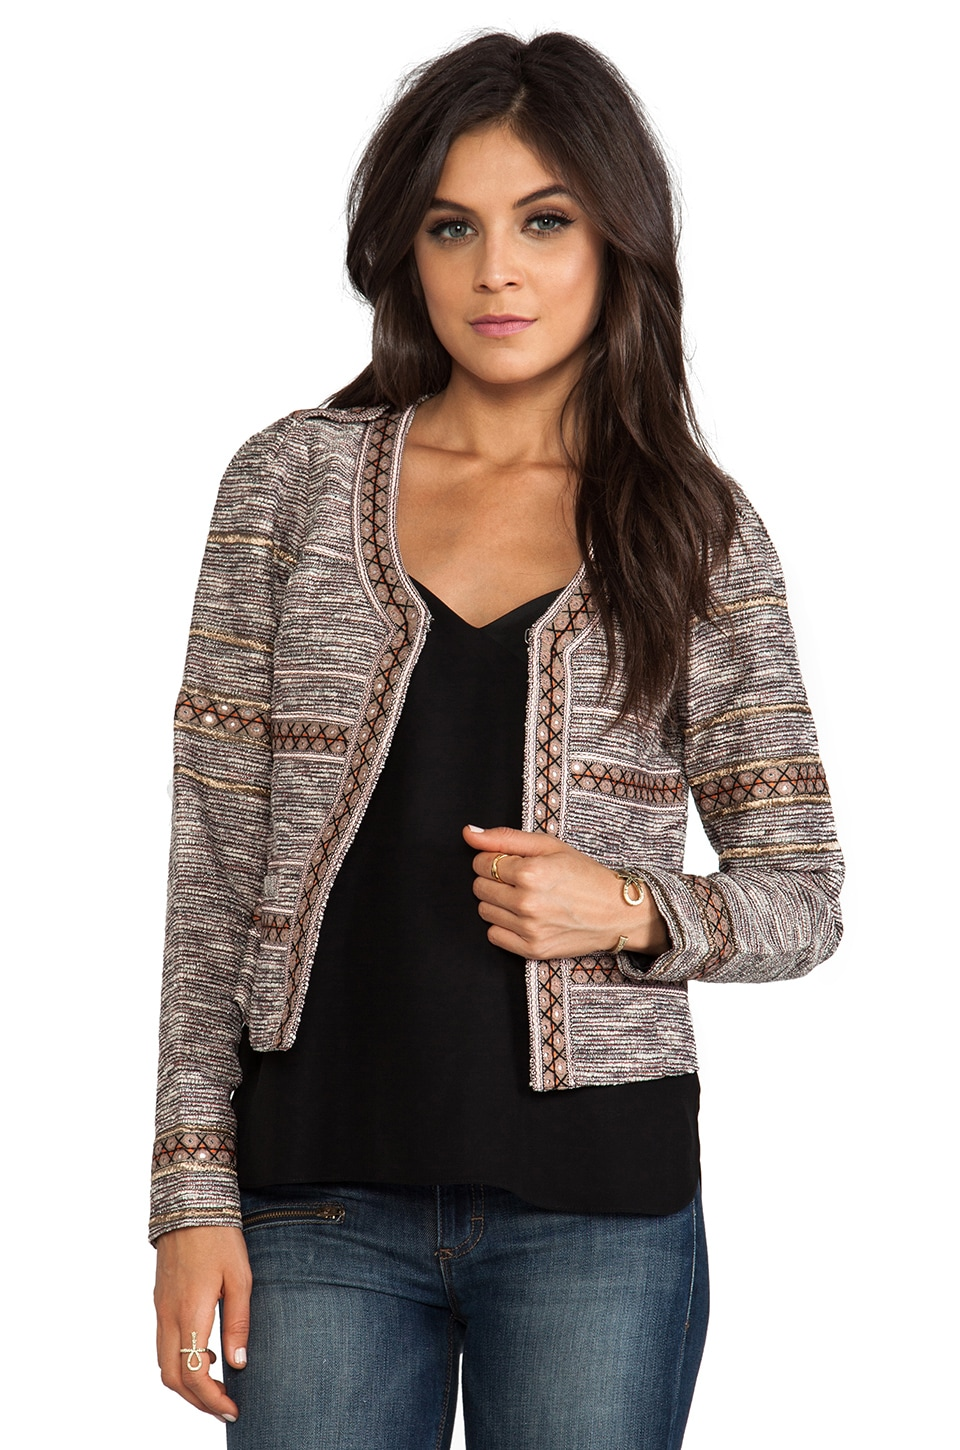 Maison Scotch Structured Embellished Blazer in Multi